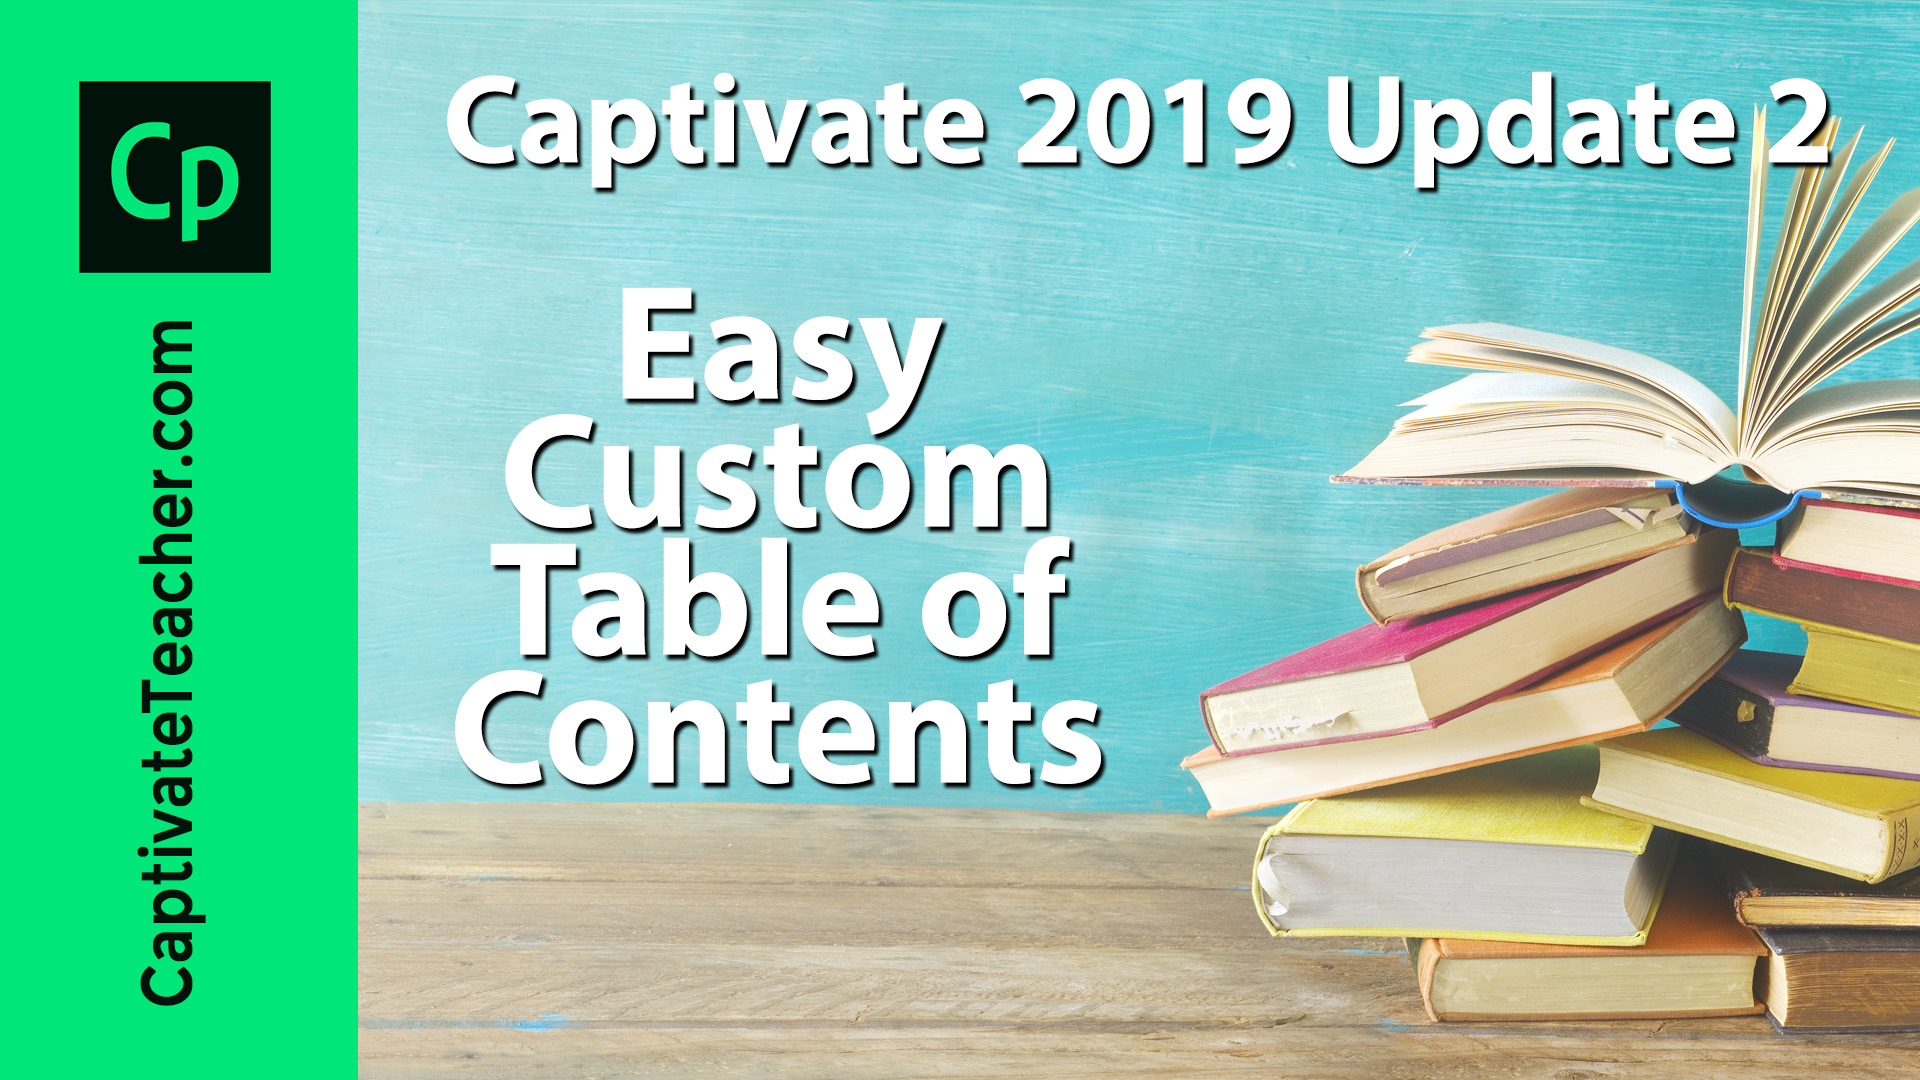 easy custom table of contents  branching  in captivate